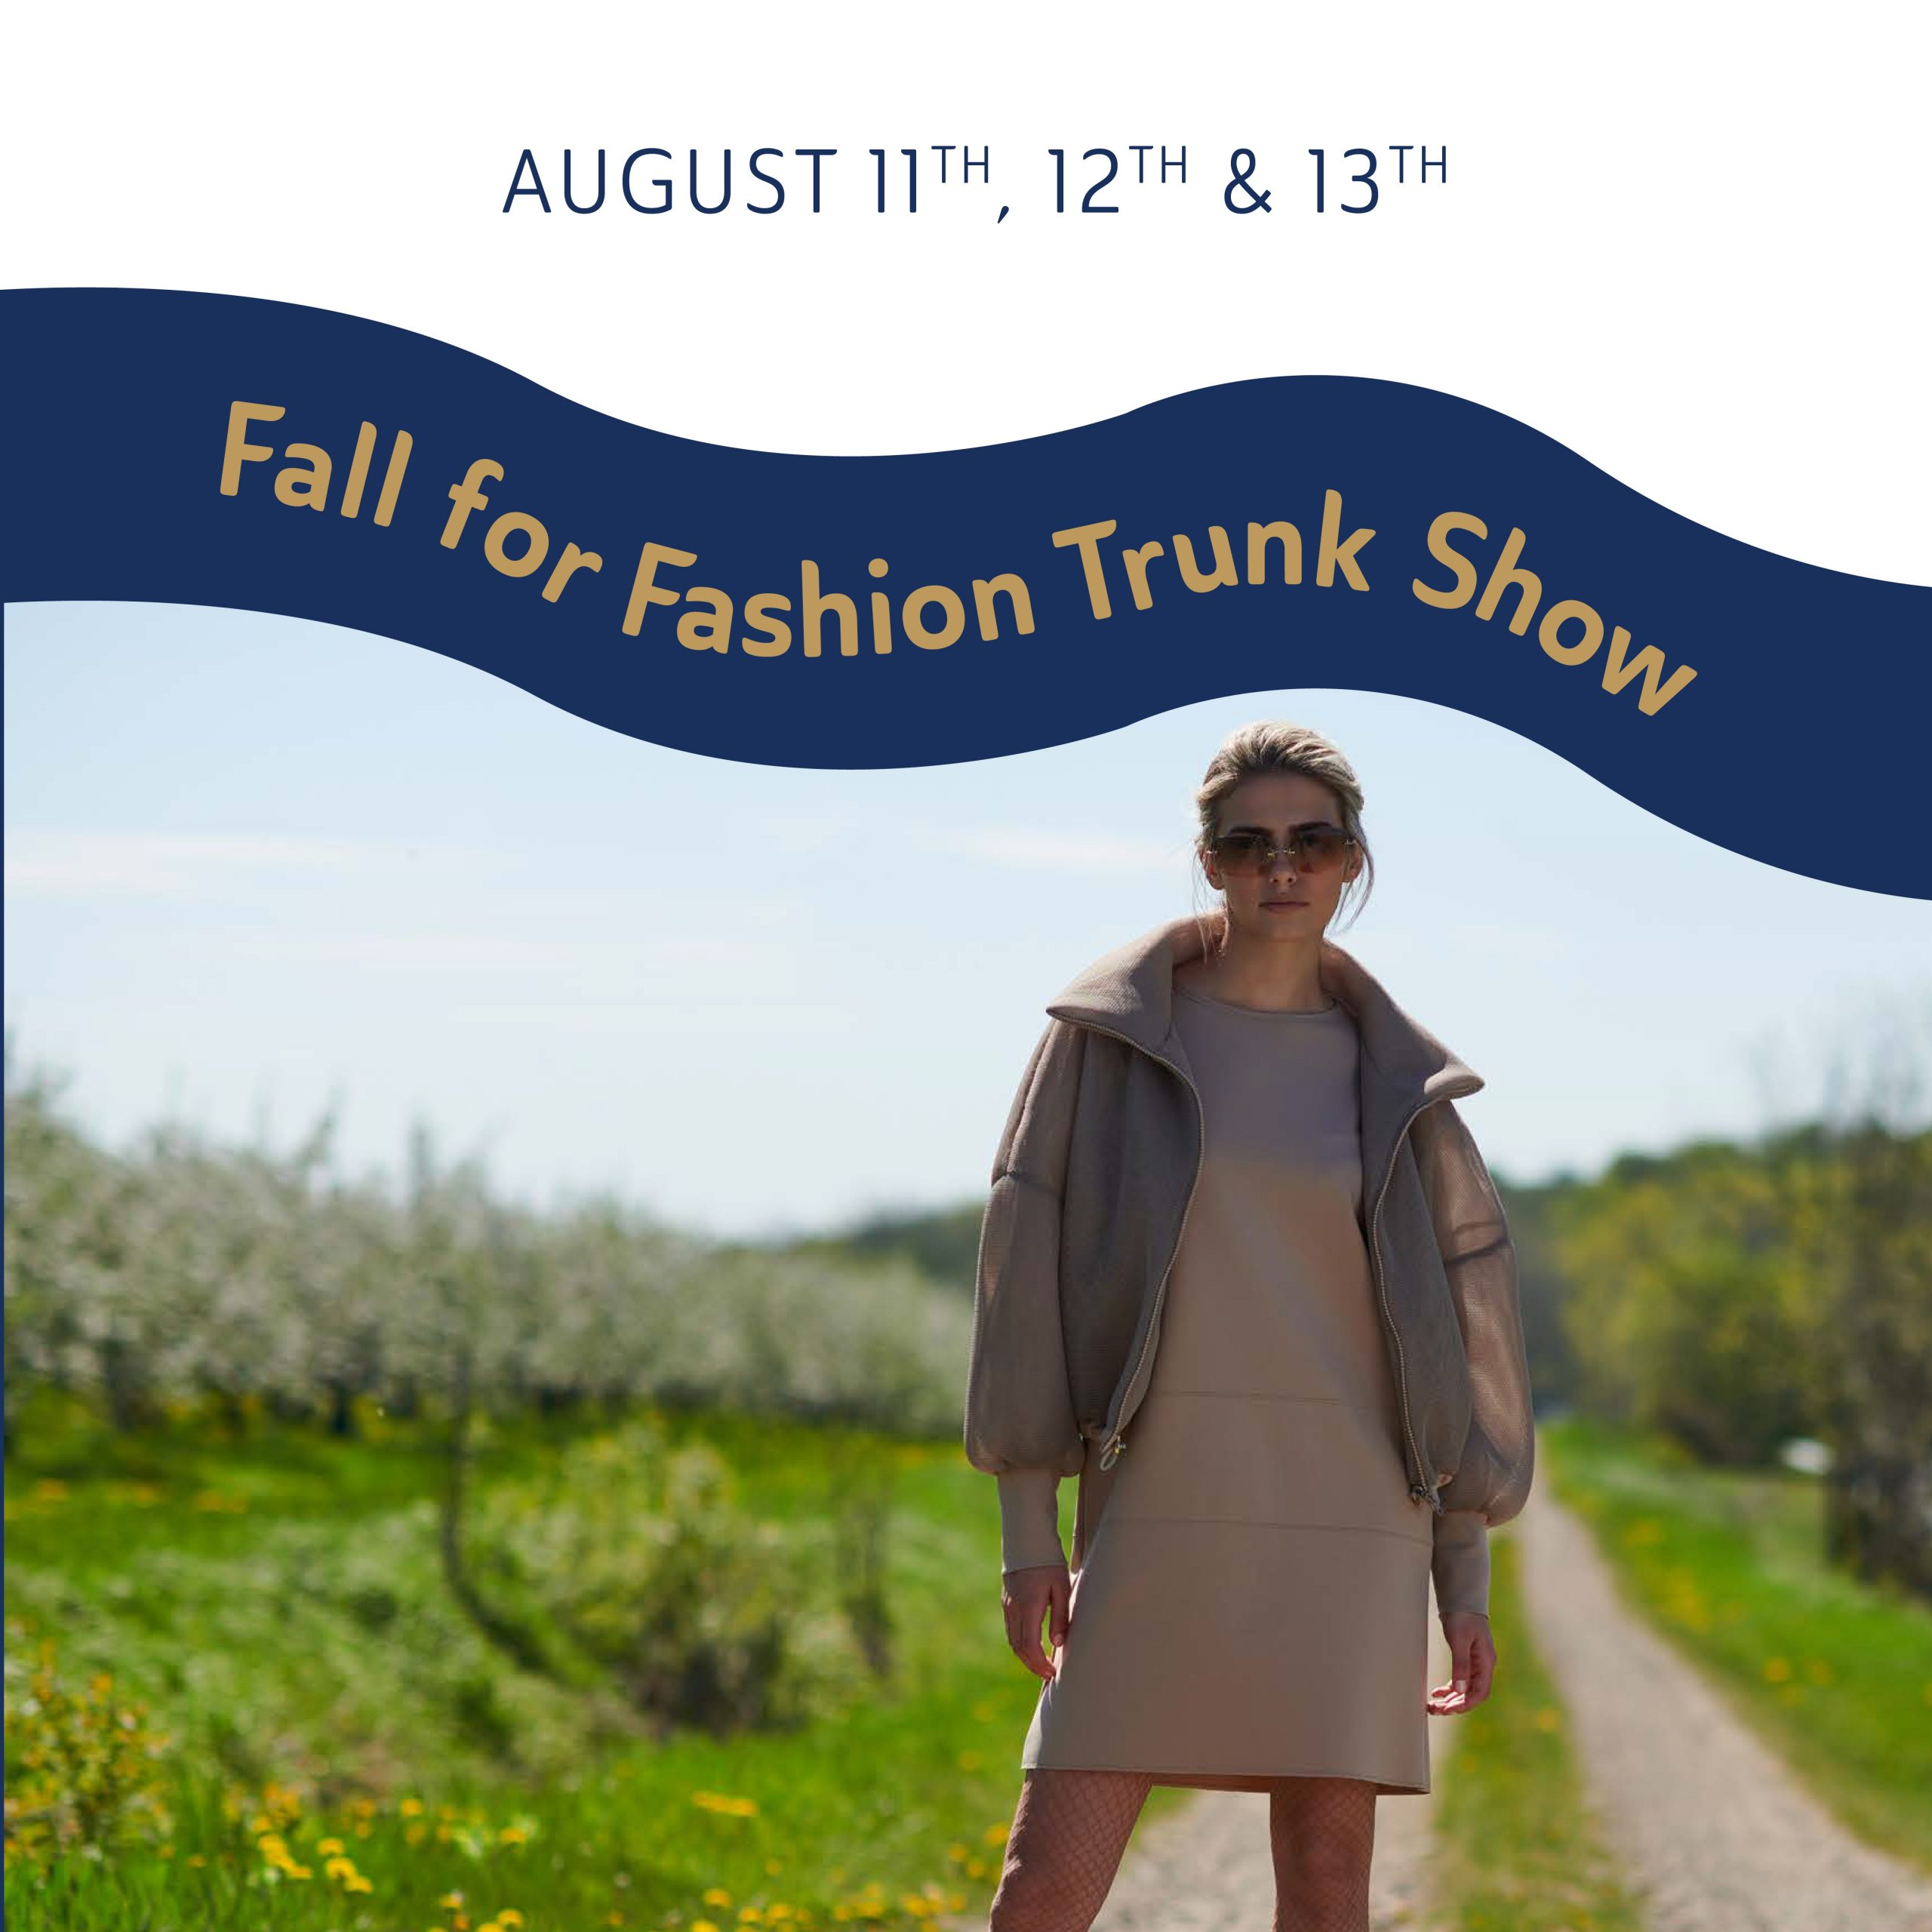 Fall for Fashion Trunk Show